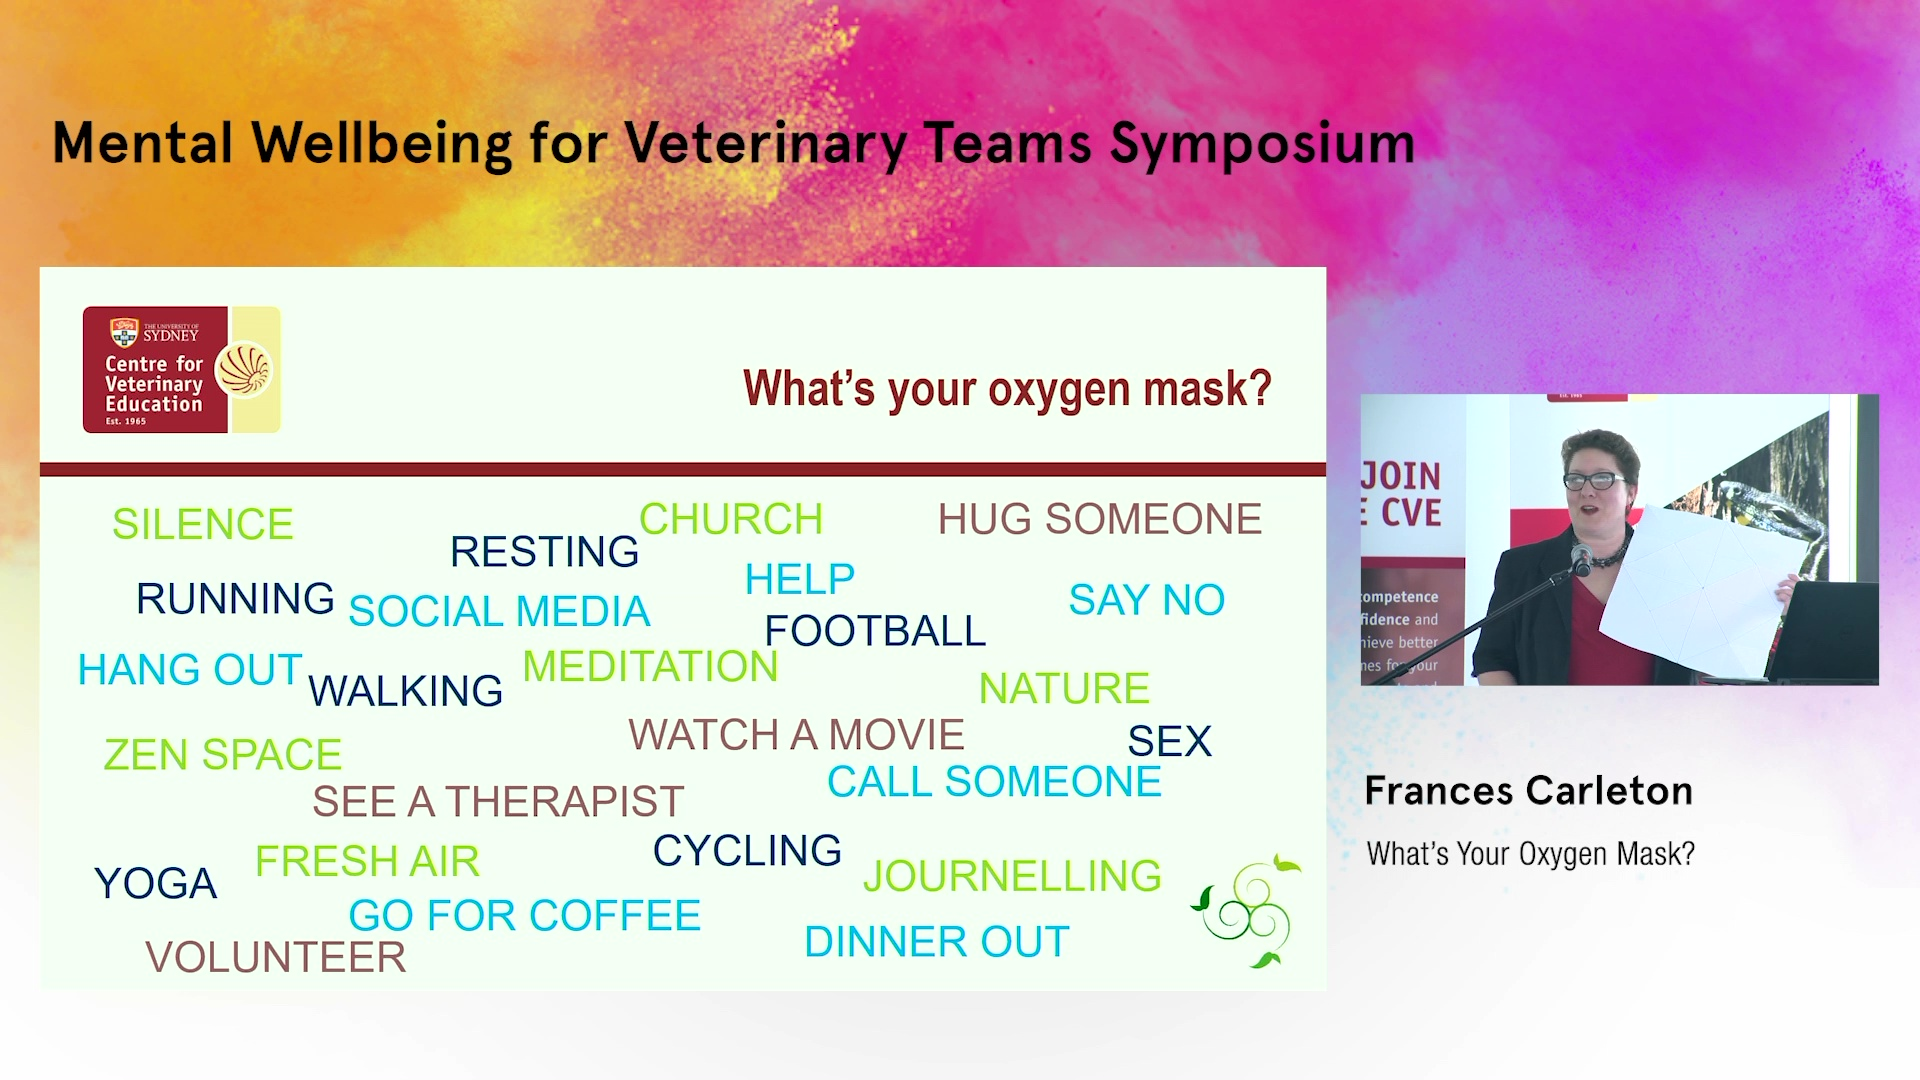 What's Your Oxygen Mask?